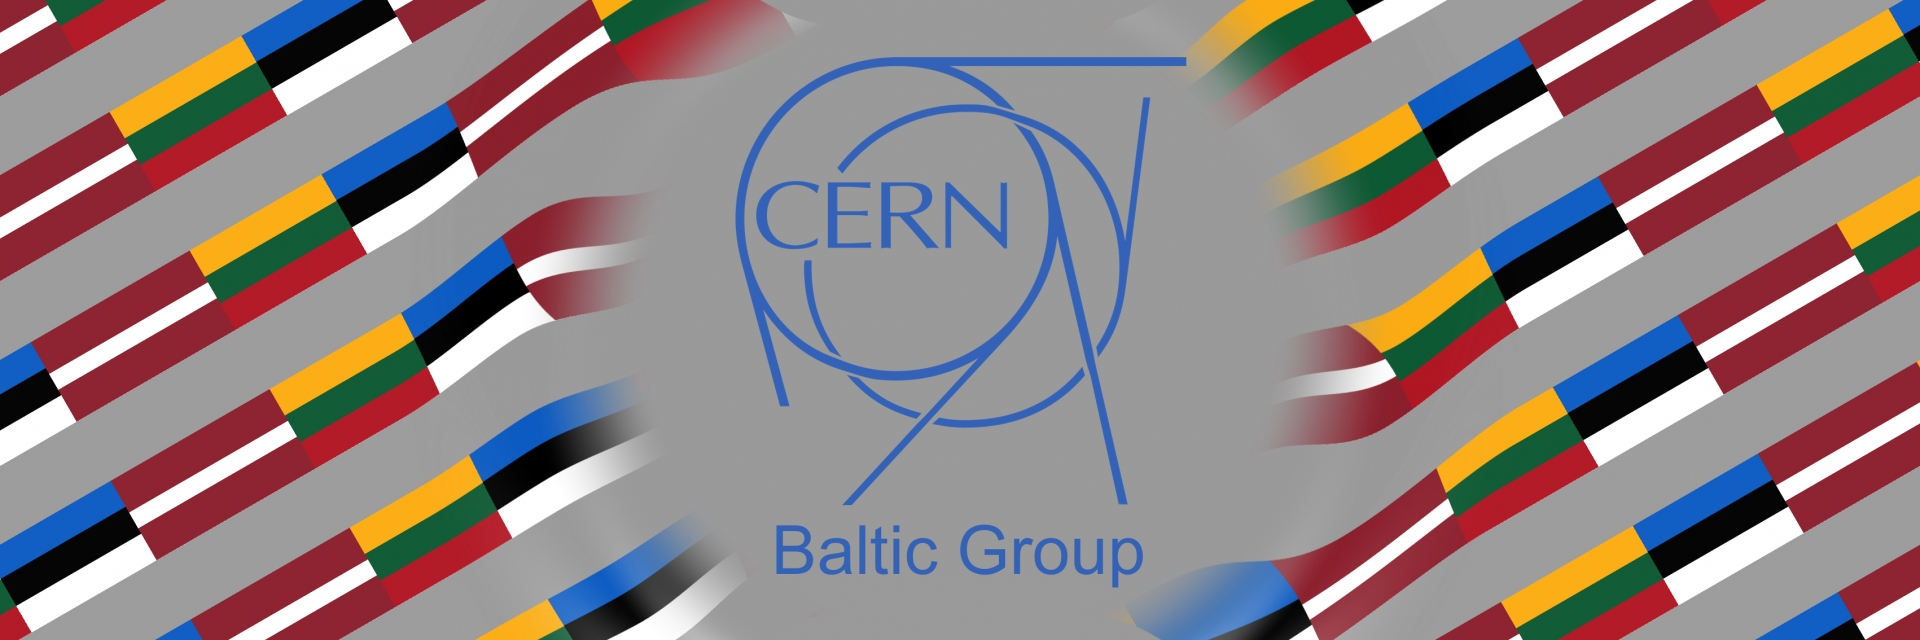 CERN Baltic Group